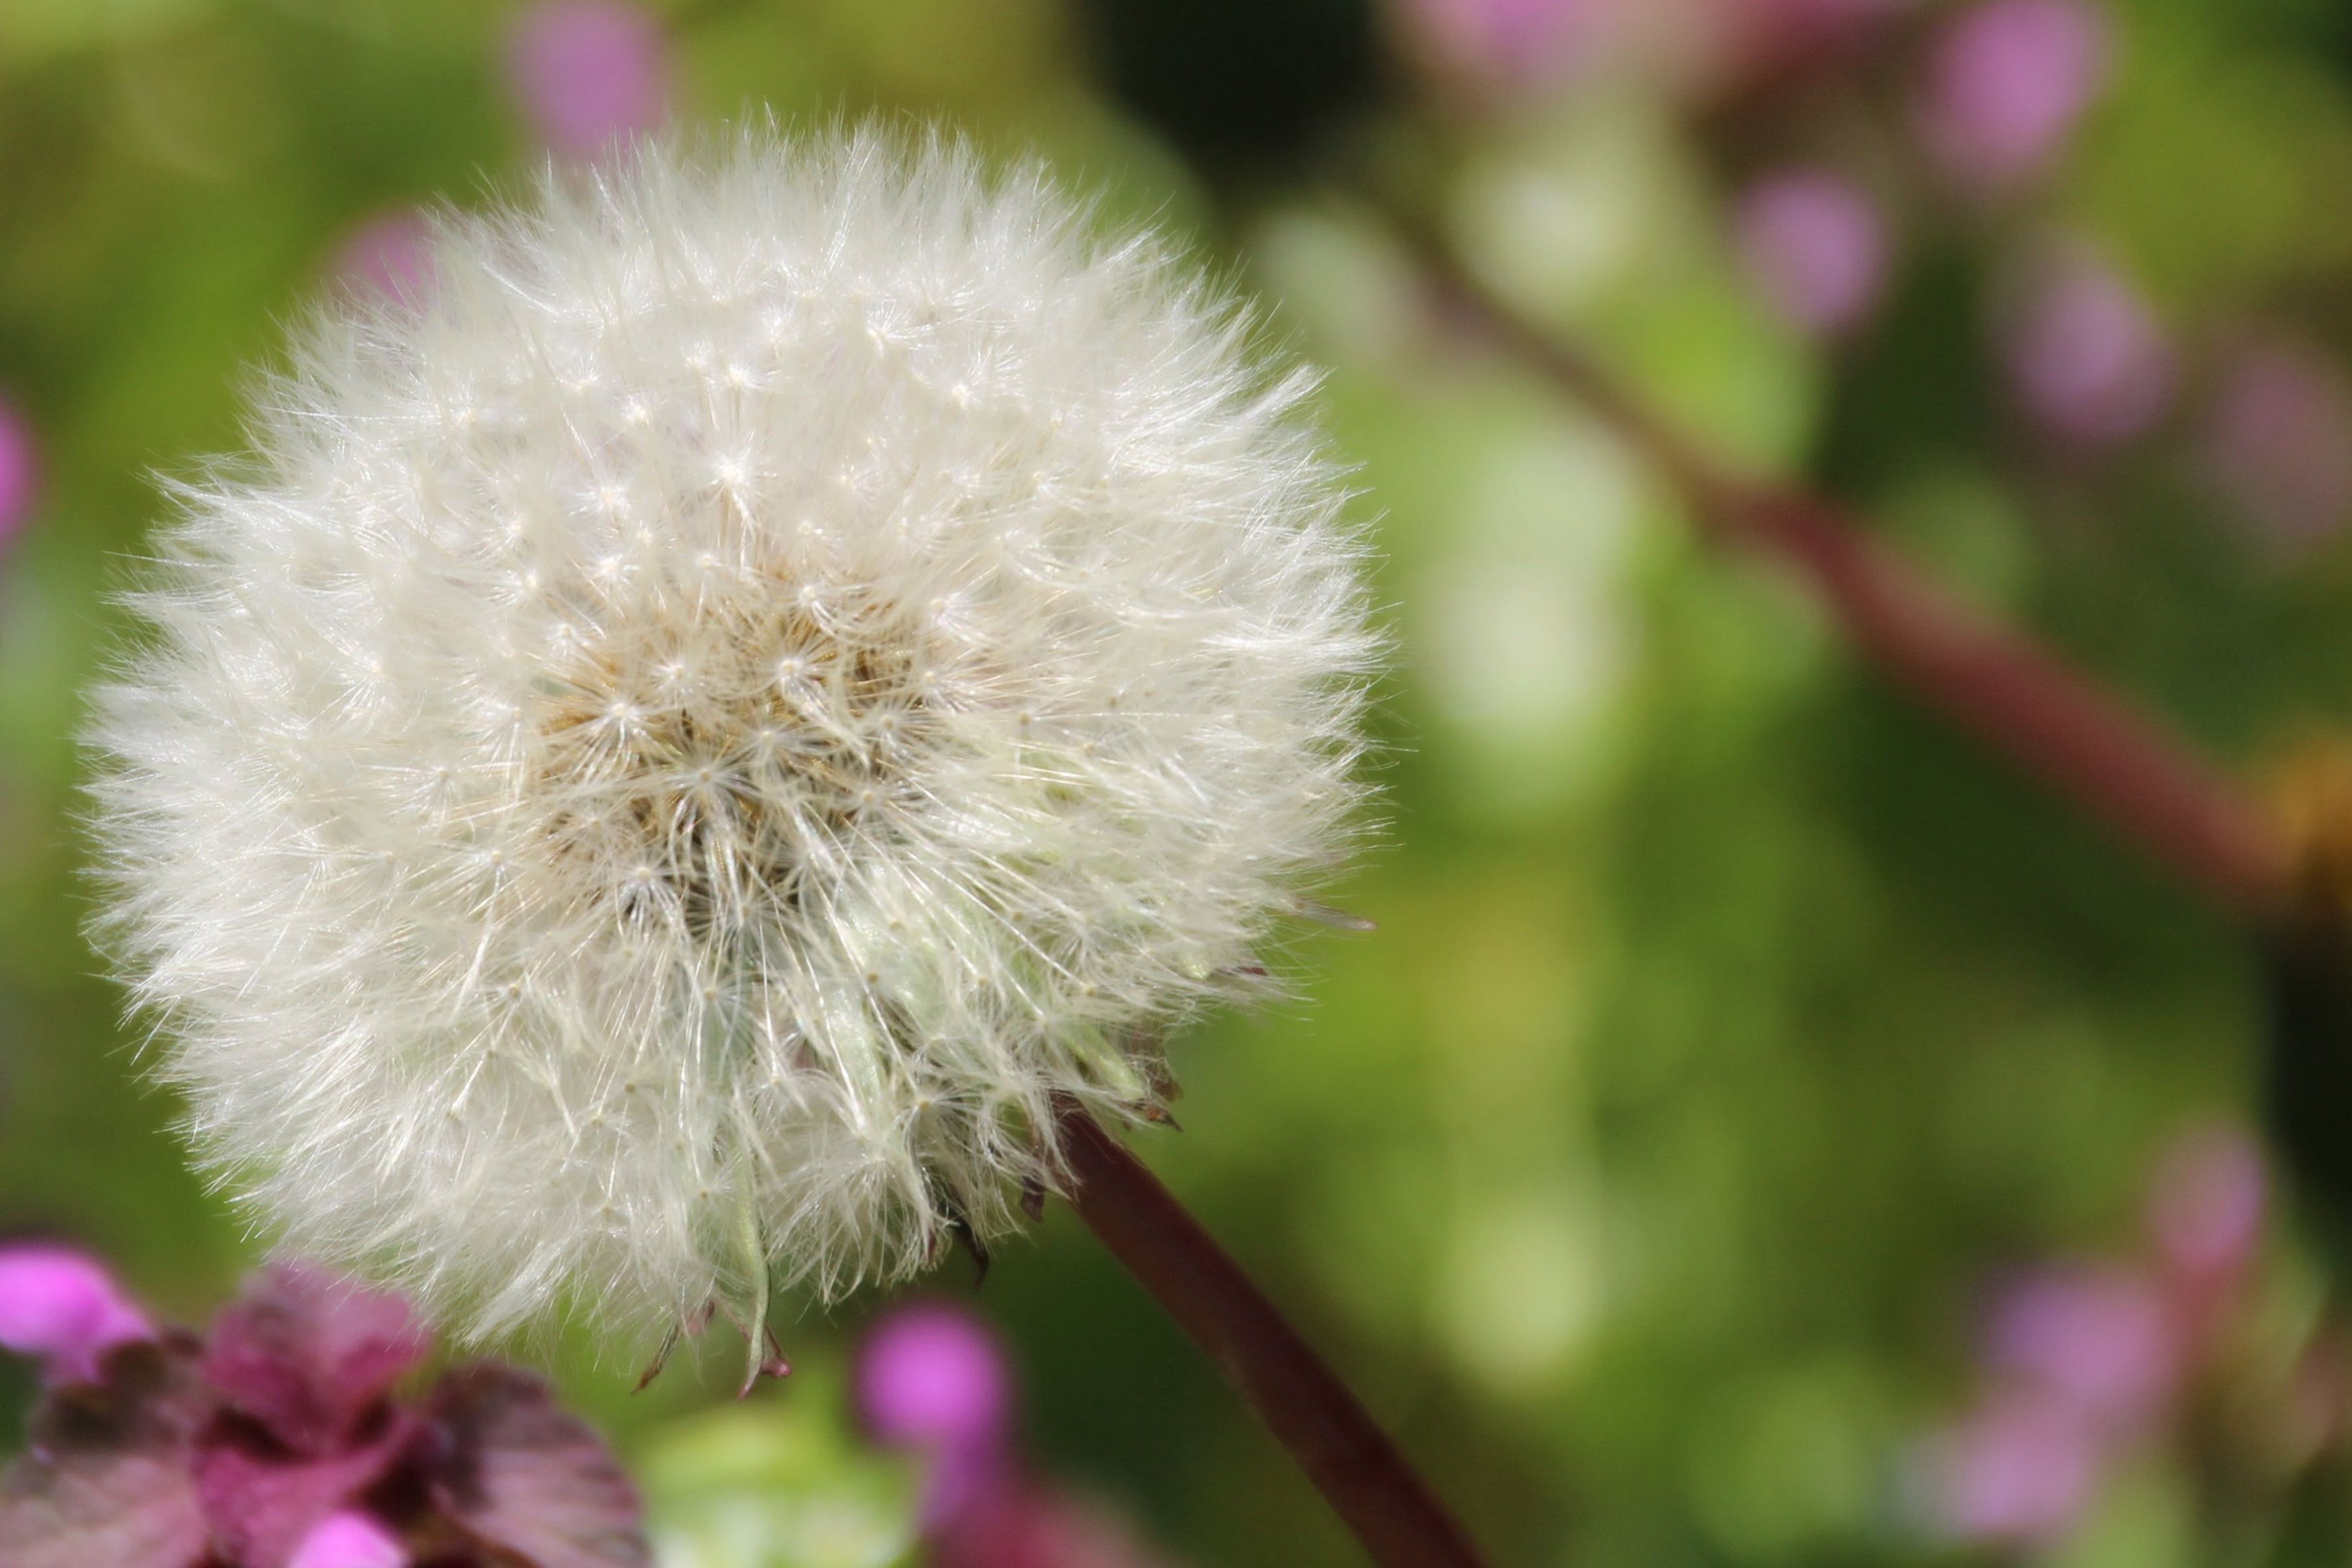 Dandelion in Macro Shot Photography